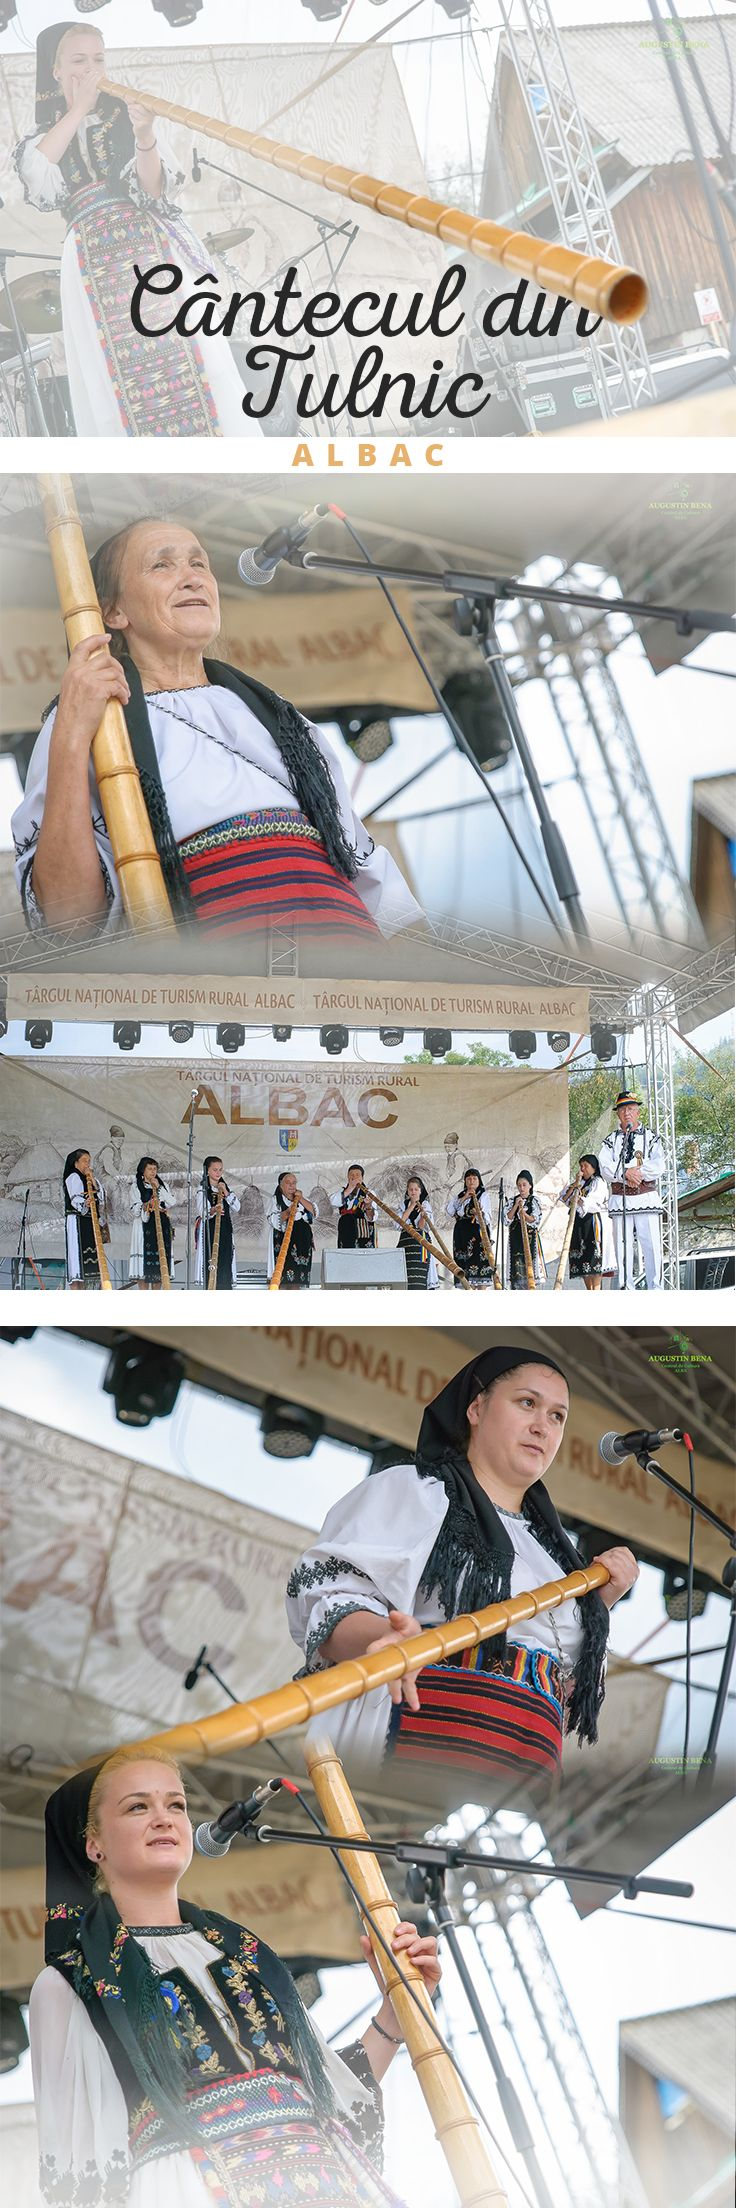 Traditional concert - The National Rural Tourism Fair in Albac, Alba County, Romania. #RomaniaFrumoasa #Romania #AlbaFrumoasa #Tourism Romania